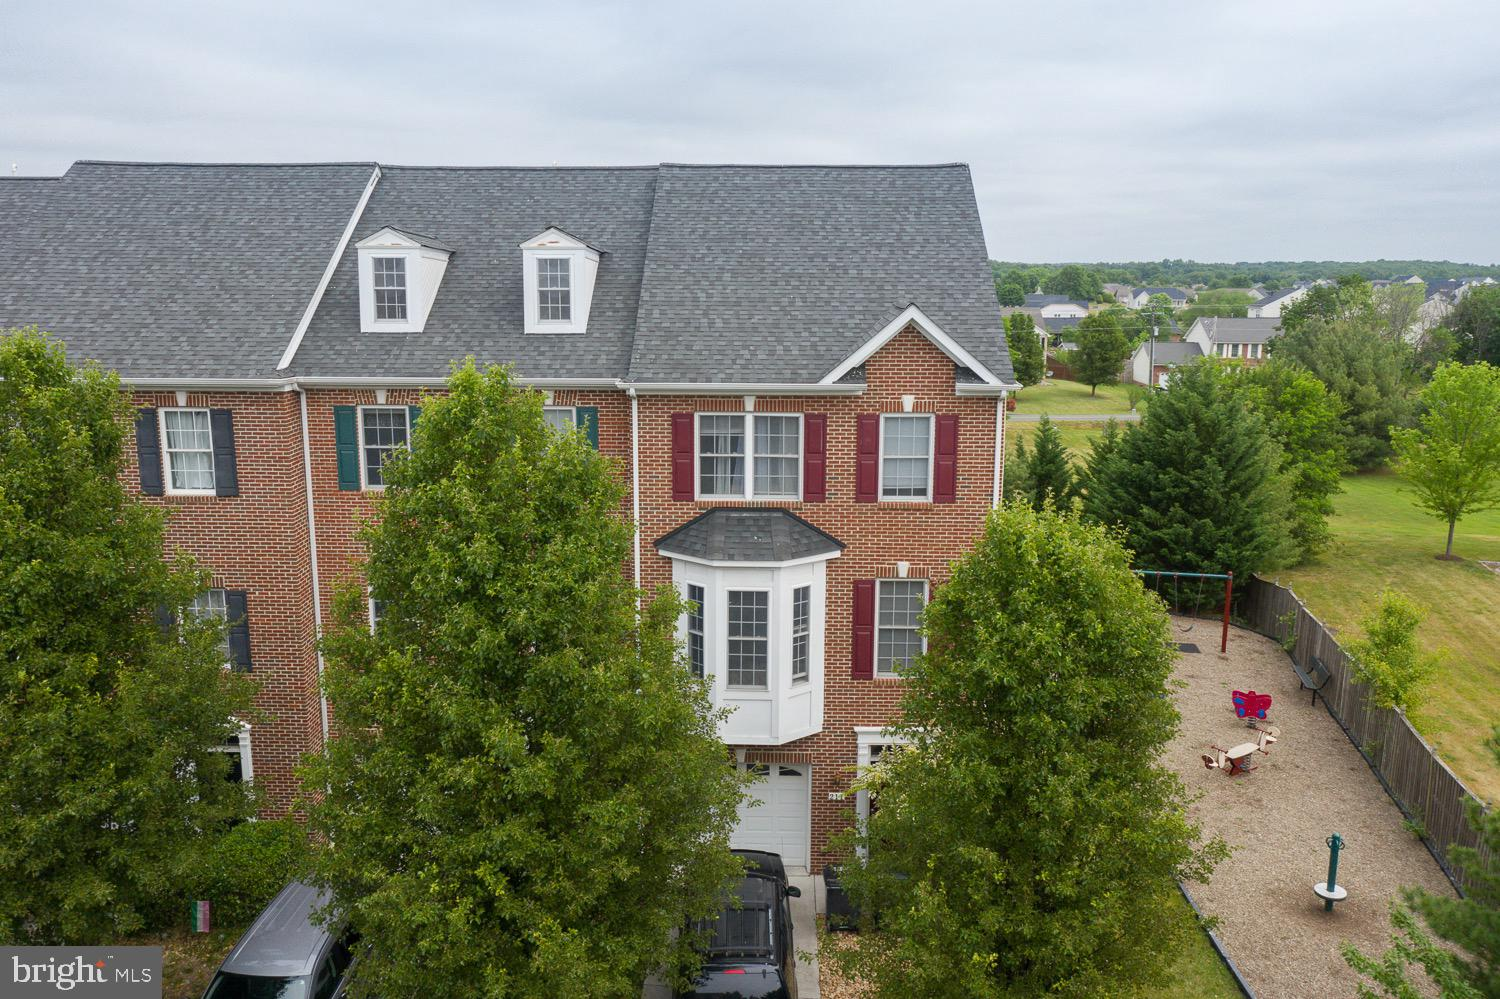 Come check out this great, end unit townhouse, located  in Stephens City! Great commuter location- only 5 minutes from Interstate 81 and only 20 minutes from Route 50. Small community of townhouses and located near all great things Stephens City has to offer. Grocery shopping, parks, walking paths, outdoor trials, restaurants, and gyms are all within a 5 minute drive. Townhouse offers 3 levels of amazing space. Gas fireplace and laundry located on lower level. Second level offers spacious kitchen and bump outs add plenty of room for small eat in kitchen or larger dining table. Half bath located on the second level off of living room. Two full baths located on top level in hallway and Master bedroom. Bring all offers